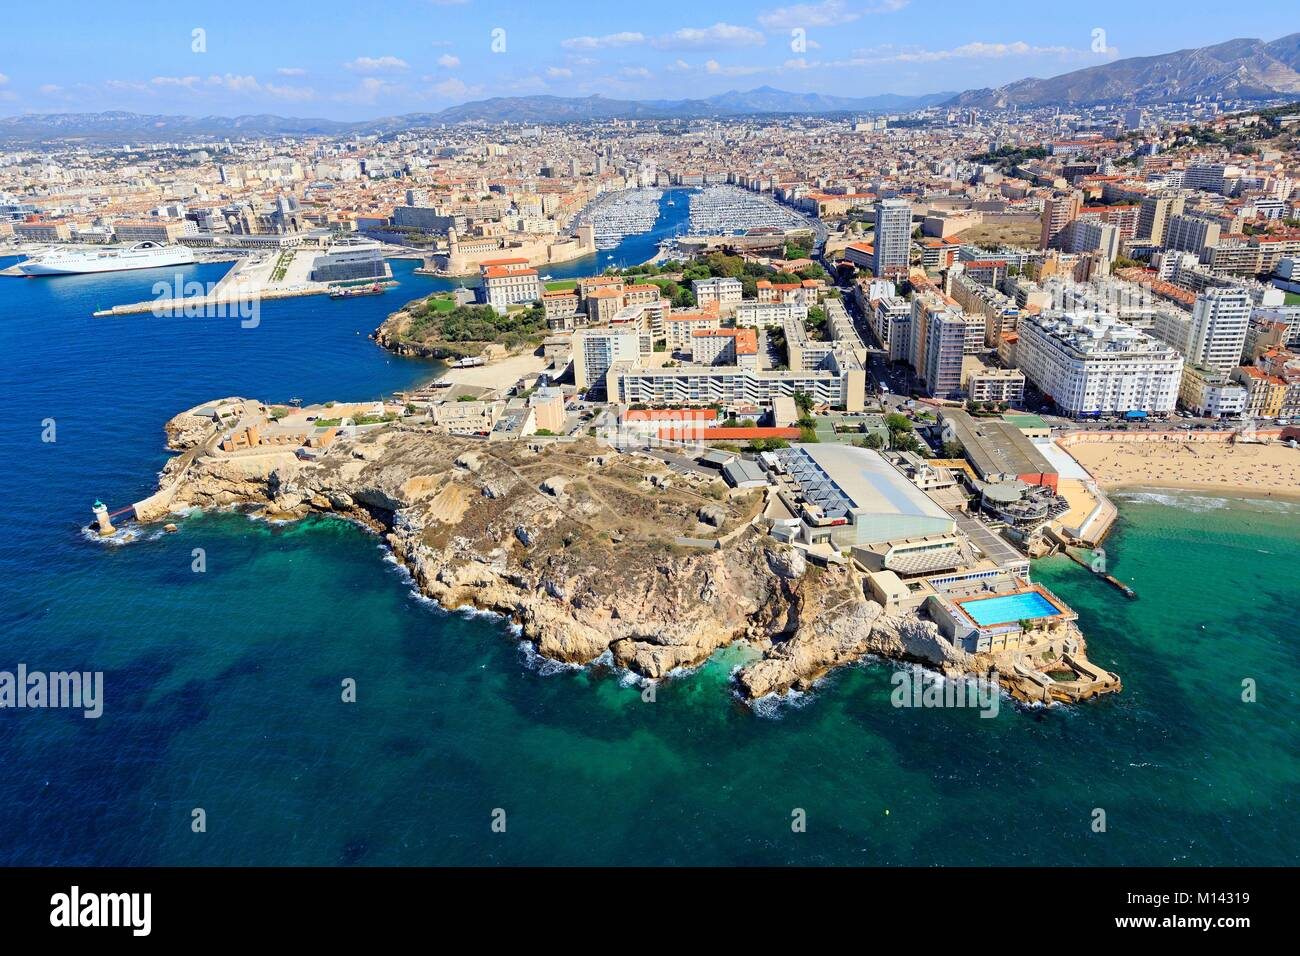 aerial people beach pool stock photos aerial people beach pool stock images alamy. Black Bedroom Furniture Sets. Home Design Ideas